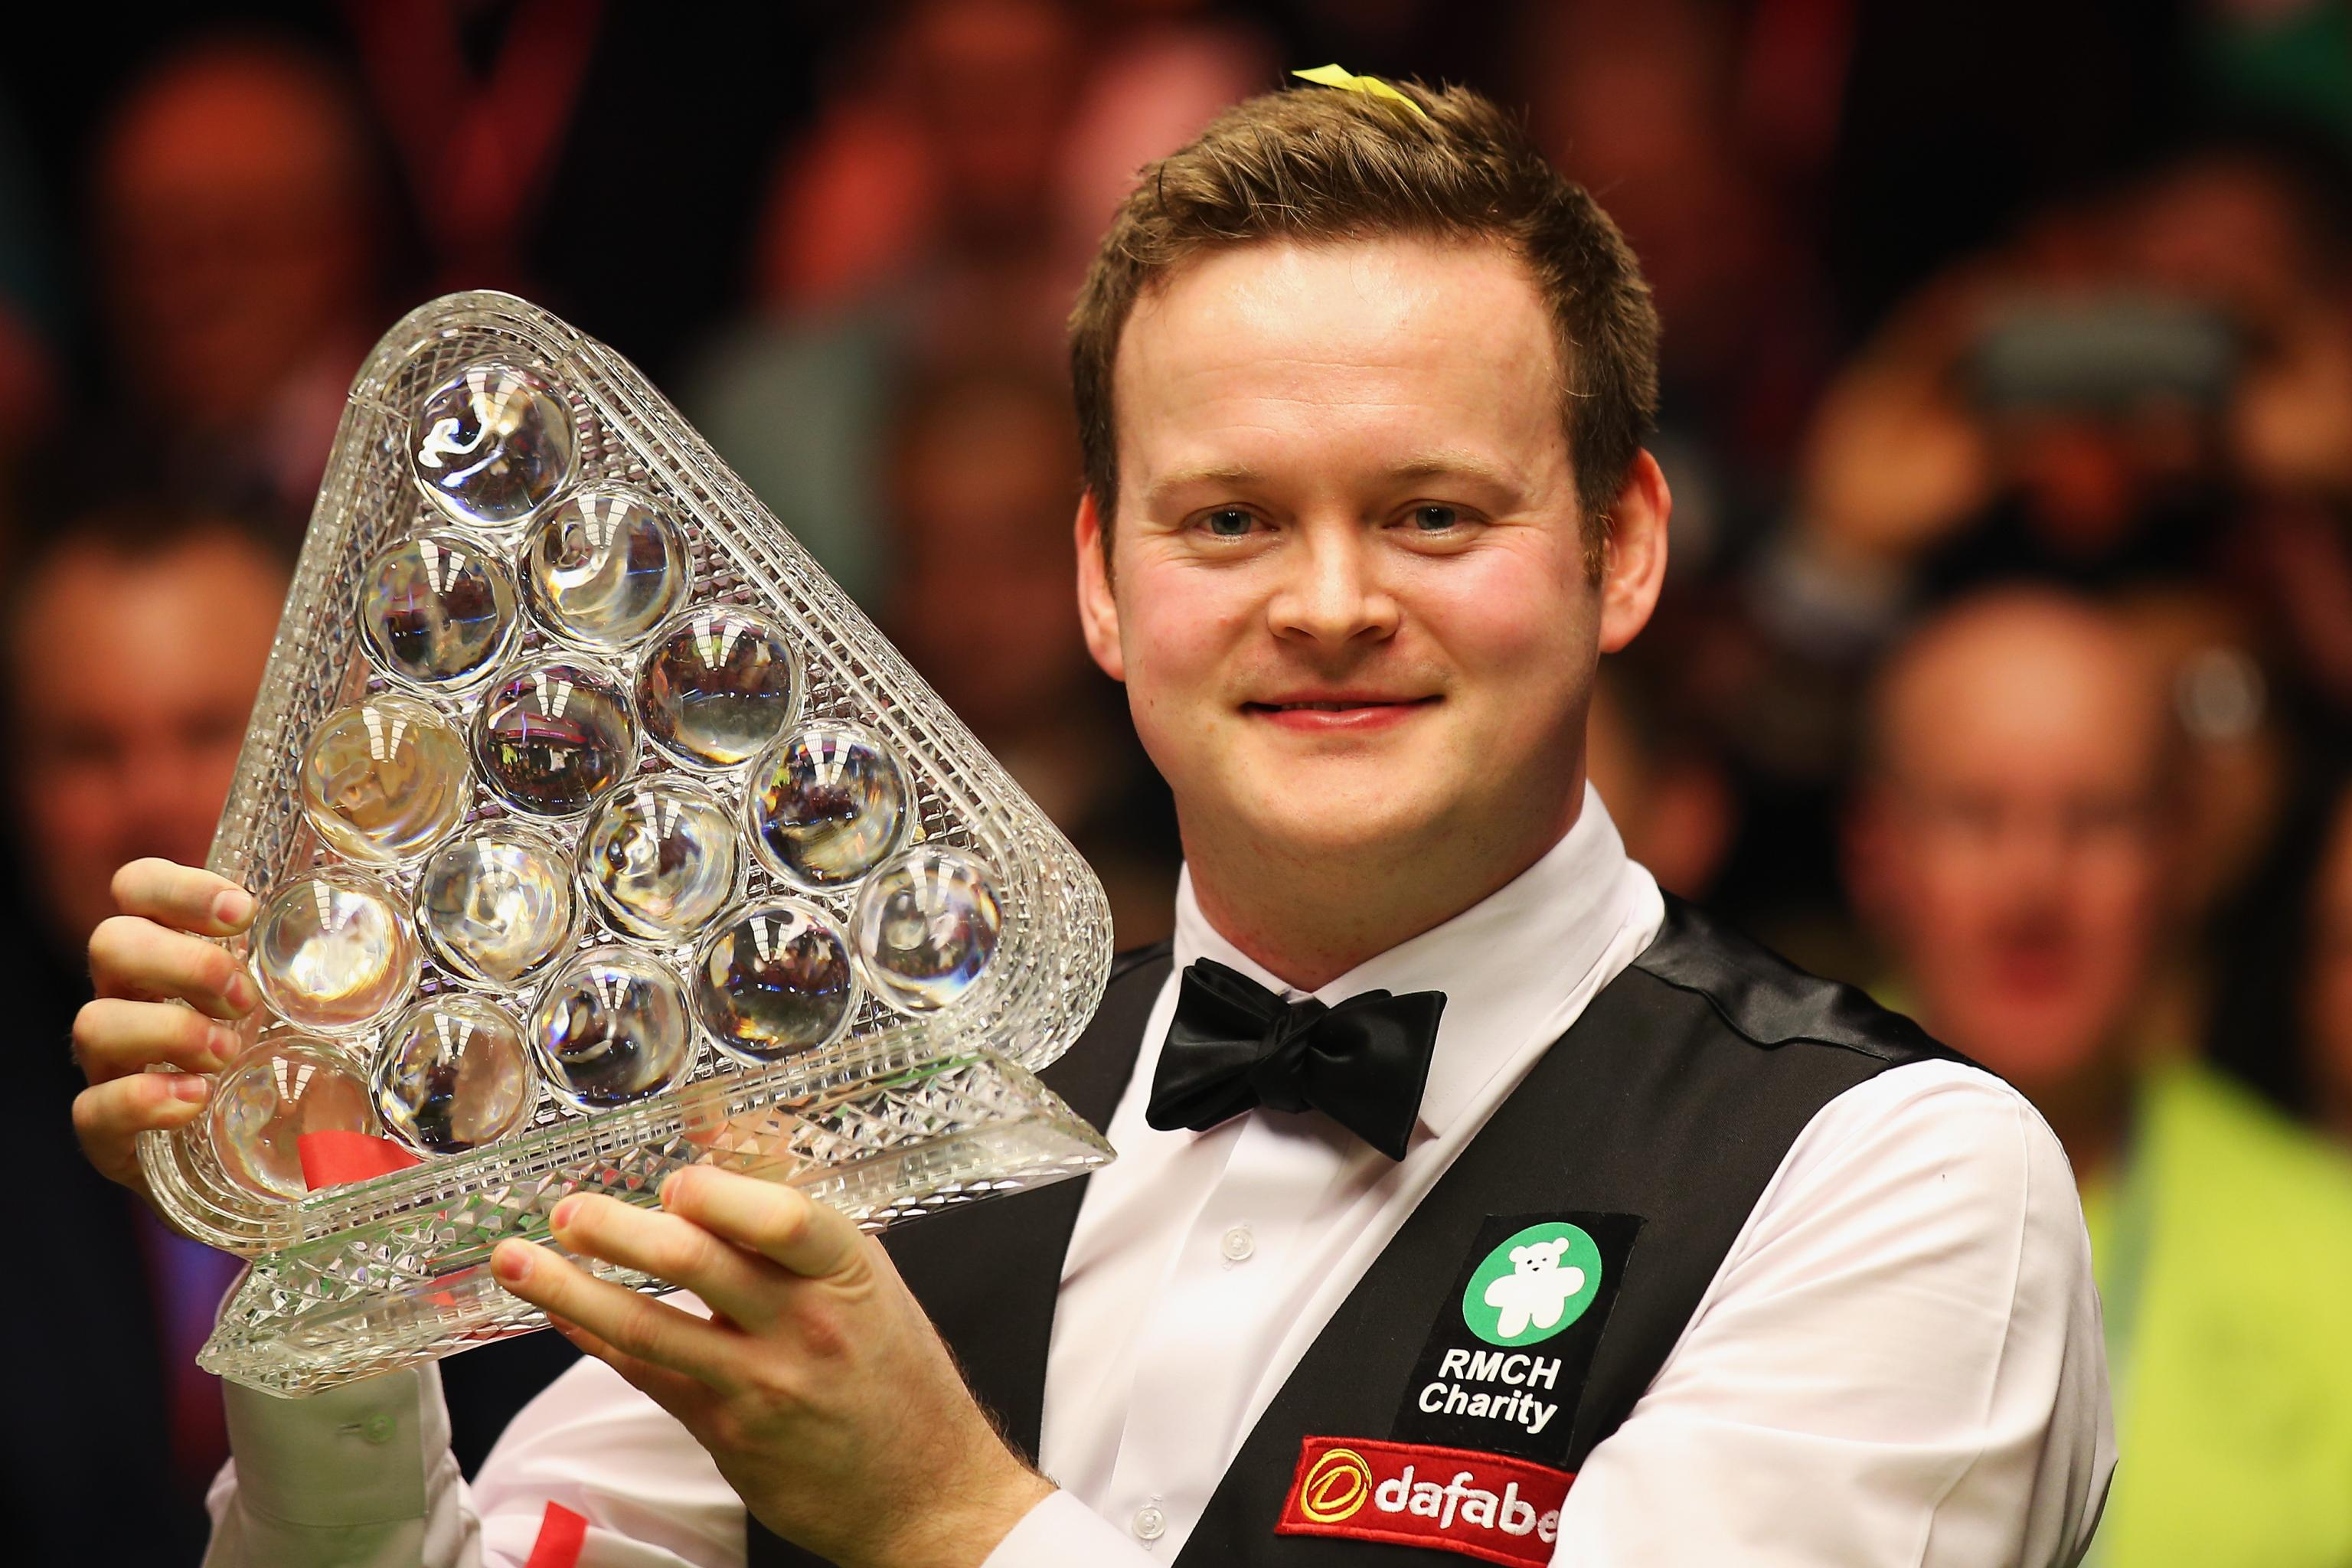 Masters Snooker 2016: Schedule, Draw, Live Stream, TV Info and ...